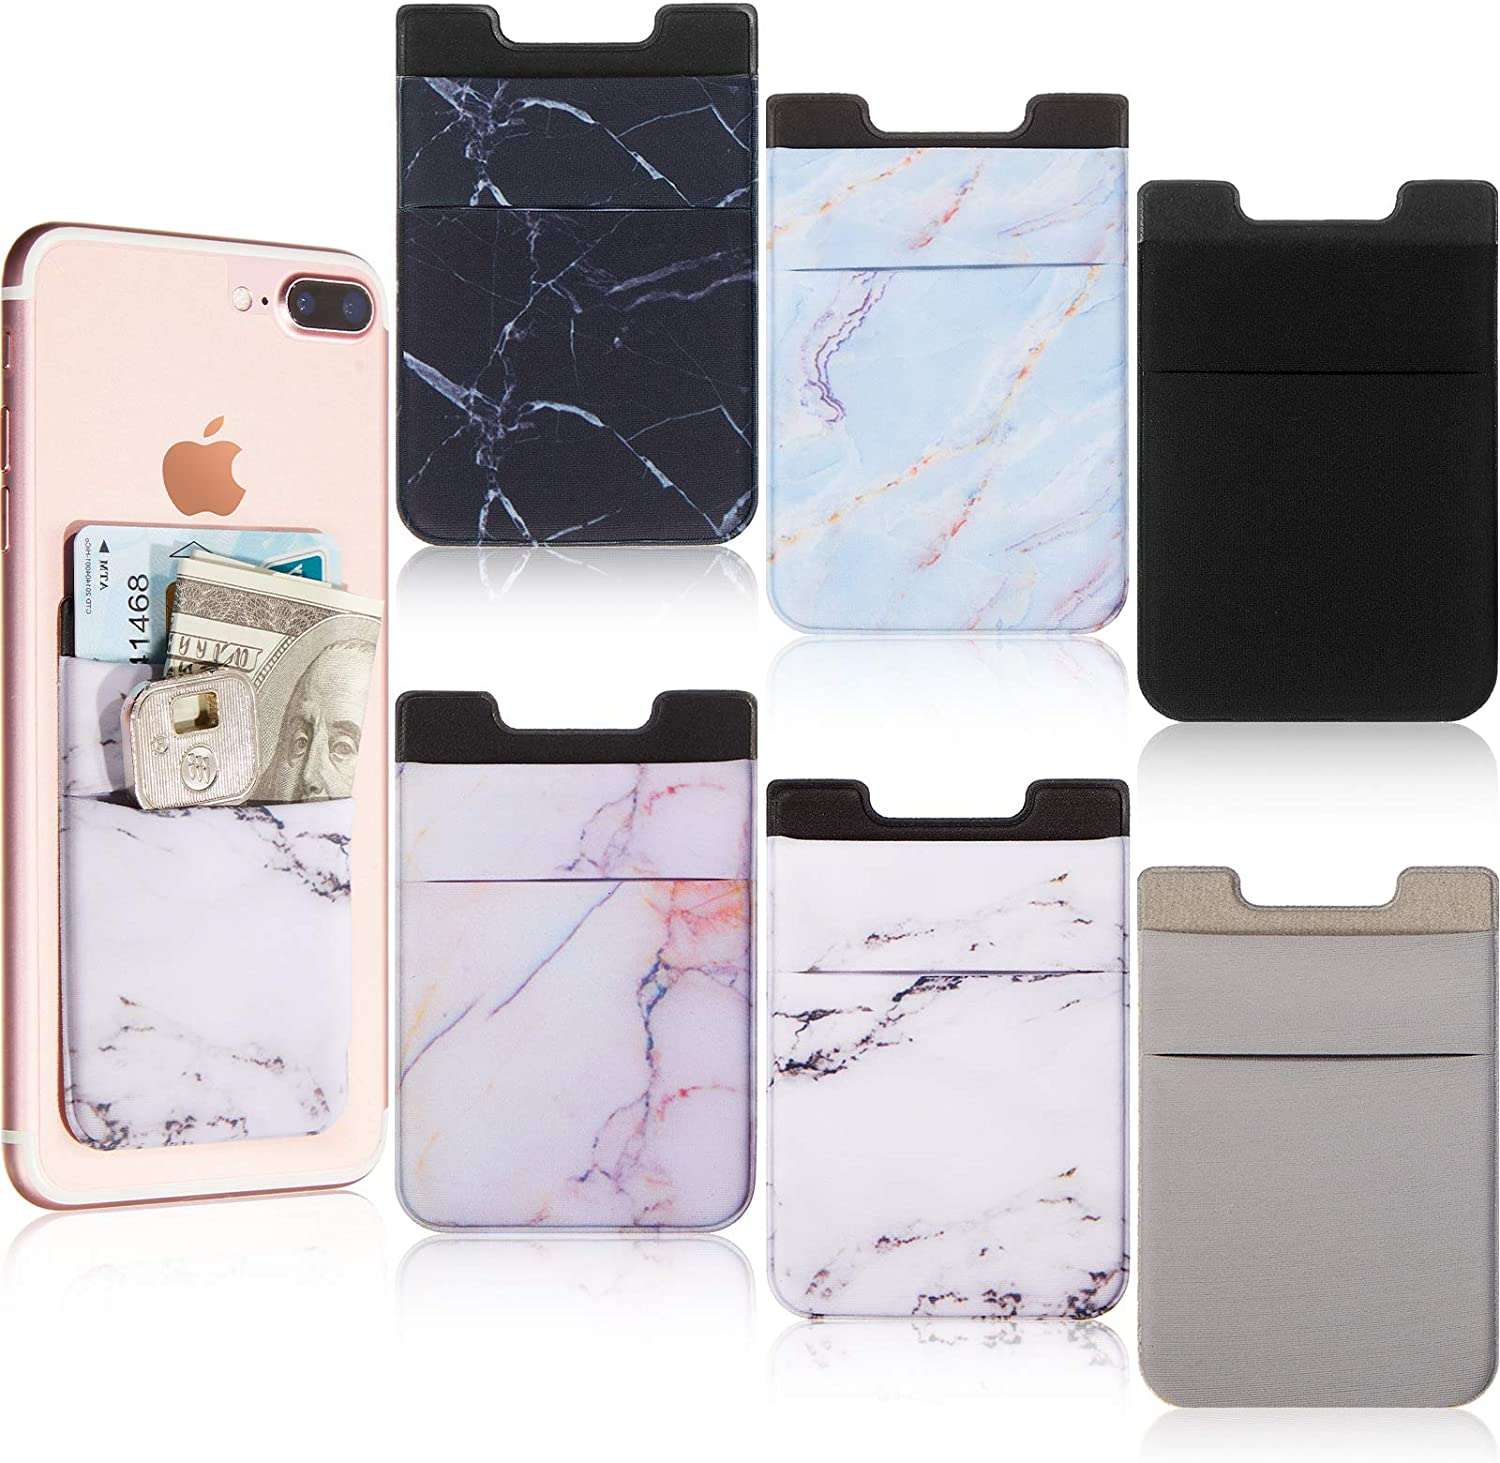 6 Pieces Stretchy Marble Cell Phone Sticker Phone Card Holder Sleeve Wallet ID Card Case Sticker Adhesive Phone Pouch Pocket Sticker for Smartphones, Indoor Outdoor Uses, 6 Styles